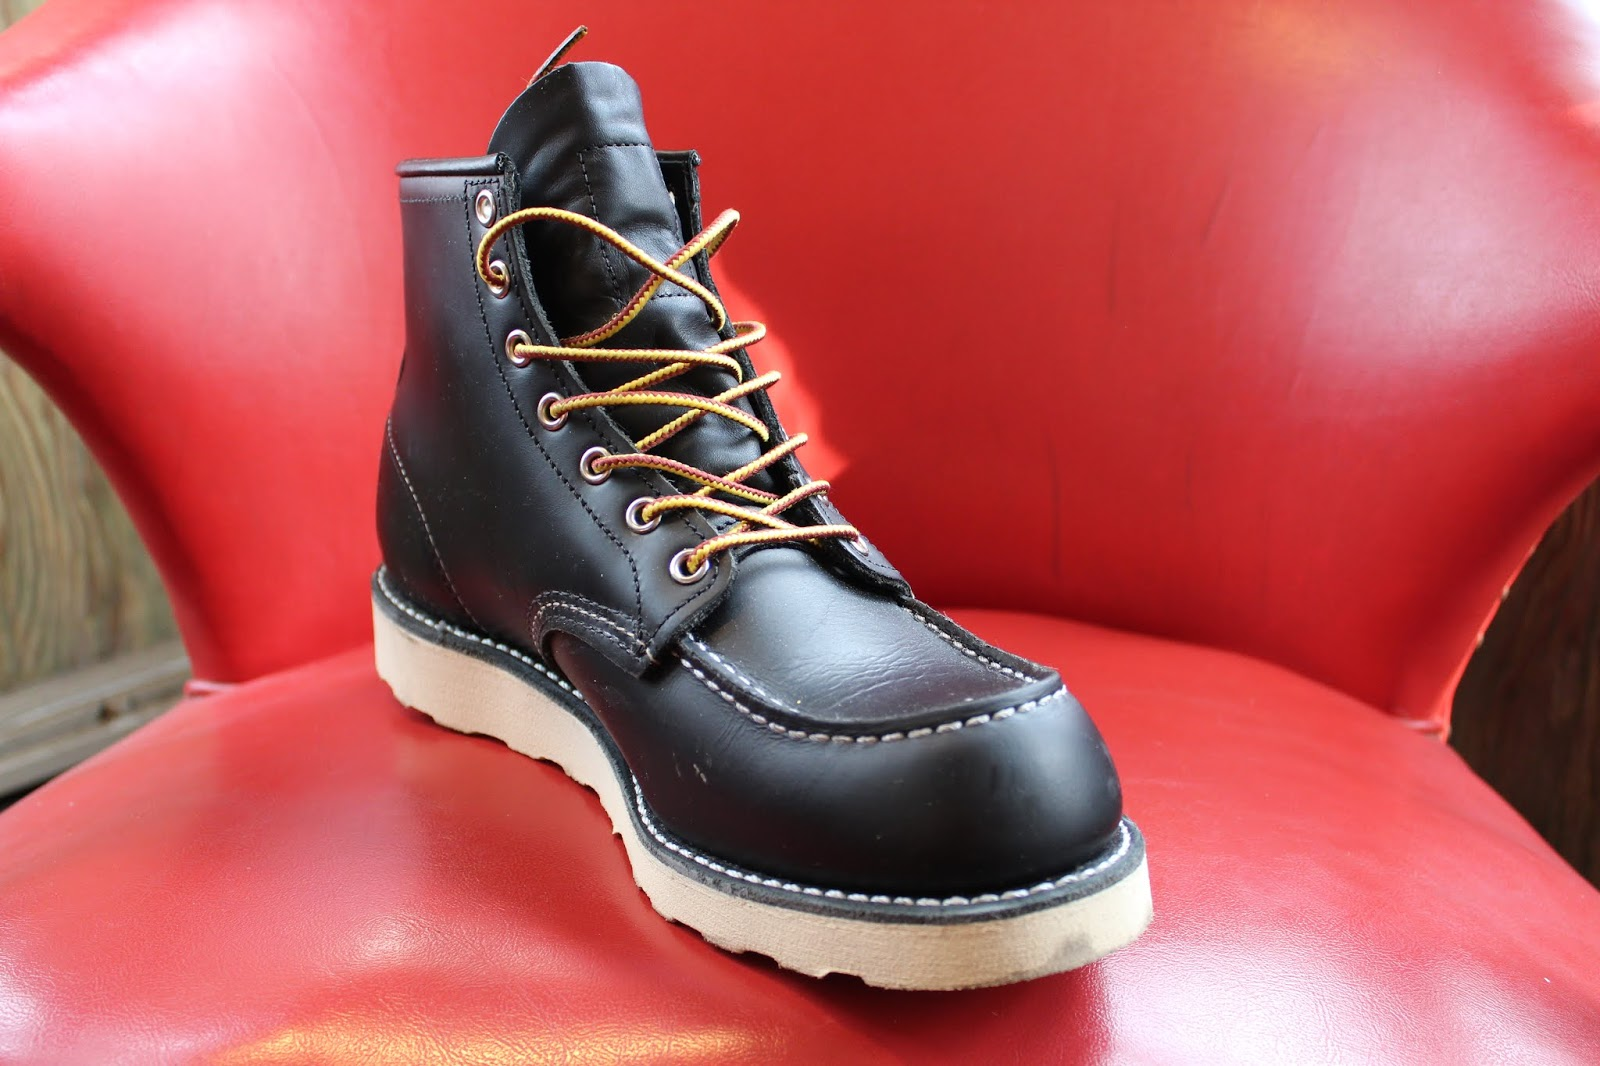 5b3111f073c Red Wing Cycling Boots: The Best Winter Riding Footwear | bike blog ...